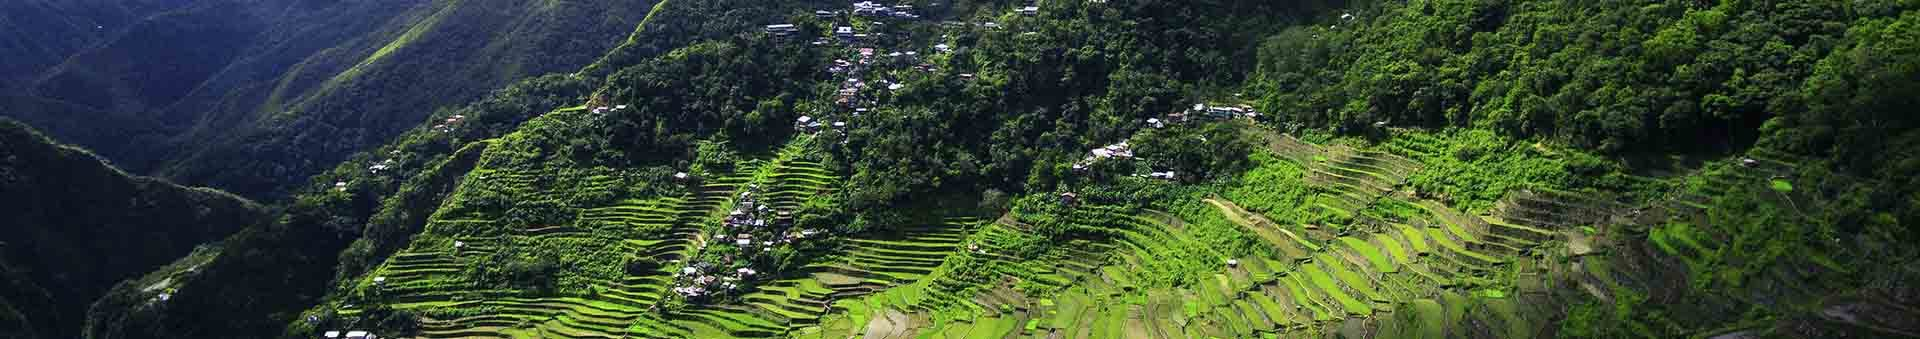 <div> <p><strong>Here's a travel tip from us here at <a href=&quot;https://www.airvuz.com&quot;>AirVūz</a>...Grab your drone and get over to the Philippines NOW!</strong></p> <p>The Philippines, located in Southeast Asia, is a perfect destination to hop from island to island, city to city, and UNESCO site to UNESCO site to get that drone footage.&nbsp; This country has over a thousand islands, including <a href=&quot;https://www.airvuz.com/video/Palawan-Philippines---4K-Drone-Film?id=5913d6cf92c9d527fe2000df&quot;><strong>Palawan</strong></a>&nbsp;and&nbsp;<strong><a href=&quot;https://www.airvuz.com/video/A-Day-in-Coron?id=5966857c3b84e93f55cfb12a&quot;>Coron</a>,</strong>&nbsp;that are surrounded by sparkling seas, tropical jungles, and heavenly beaches.&nbsp; If that's not enough to entice you, then perhaps the bustling citylife of&nbsp;<strong><a href=&quot;https://www.airvuz.com/video/Manila-New-Years-Eve-2018?id=5a4baeebc9877840bf9ac461&quot;>Manila</a>&nbsp;</strong>is more your thing? Or there is always the remarkable steps of the&nbsp;<strong><a href=&quot;https://www.airvuz.com/video/Batad---Queen-of-All-Rice-Terraces?id=5916802c8efcd769947a3d16&quot;>Ifugao Rice Terraces</a>&nbsp;</strong>to capture from an aerial view! Whether you're exploring&nbsp;<strong><a href=&quot;https://www.airvuz.com/video/BORACAY-PHILIPPINES--Rozes---BURN-WILD-Young-Bomb-Remix--DJI-Mavic-Pro--GoPro?id=595cfa844548f9144fb9bf1f&quot;>Boracay</a></strong>,&nbsp;<a href=&quot;https://www.airvuz.com/video/Osme%C3%B1a-Peak-Cebus-Highest-Peak?id=59c49e47ab2e677a6dcfdf4e&quot;><strong>Cebu</strong></a>, or&nbsp;<strong><a href=&quot;https://www.airvuz.com/video/BOHOL--Revisited?id=593706321ddade7d90a6844f&quot;>Bohol</a>&nbsp;</strong>make darn sure you capture those spots from above and share your drone videos with the community here on&nbsp;<strong><a href=&quot;https://www.airvuz.com&quot;>AirVūz</a>!</strong></p> <div>Check out all the aerial footage of the Philippines in the colle